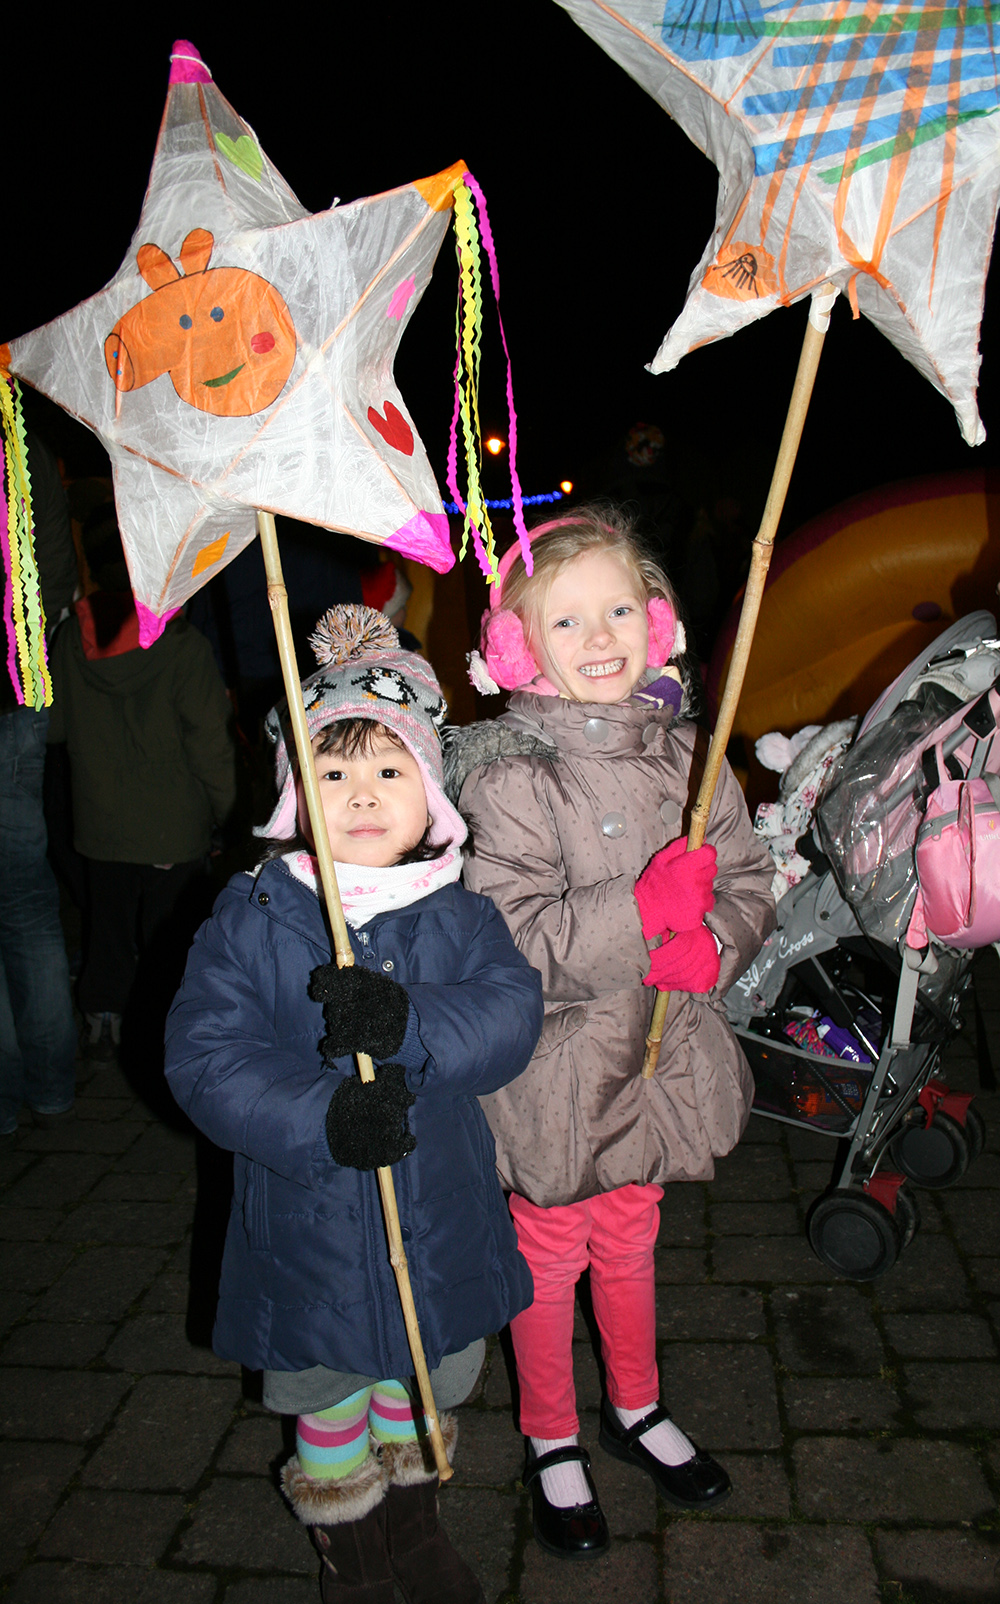 Xmas lights girls with lanterns